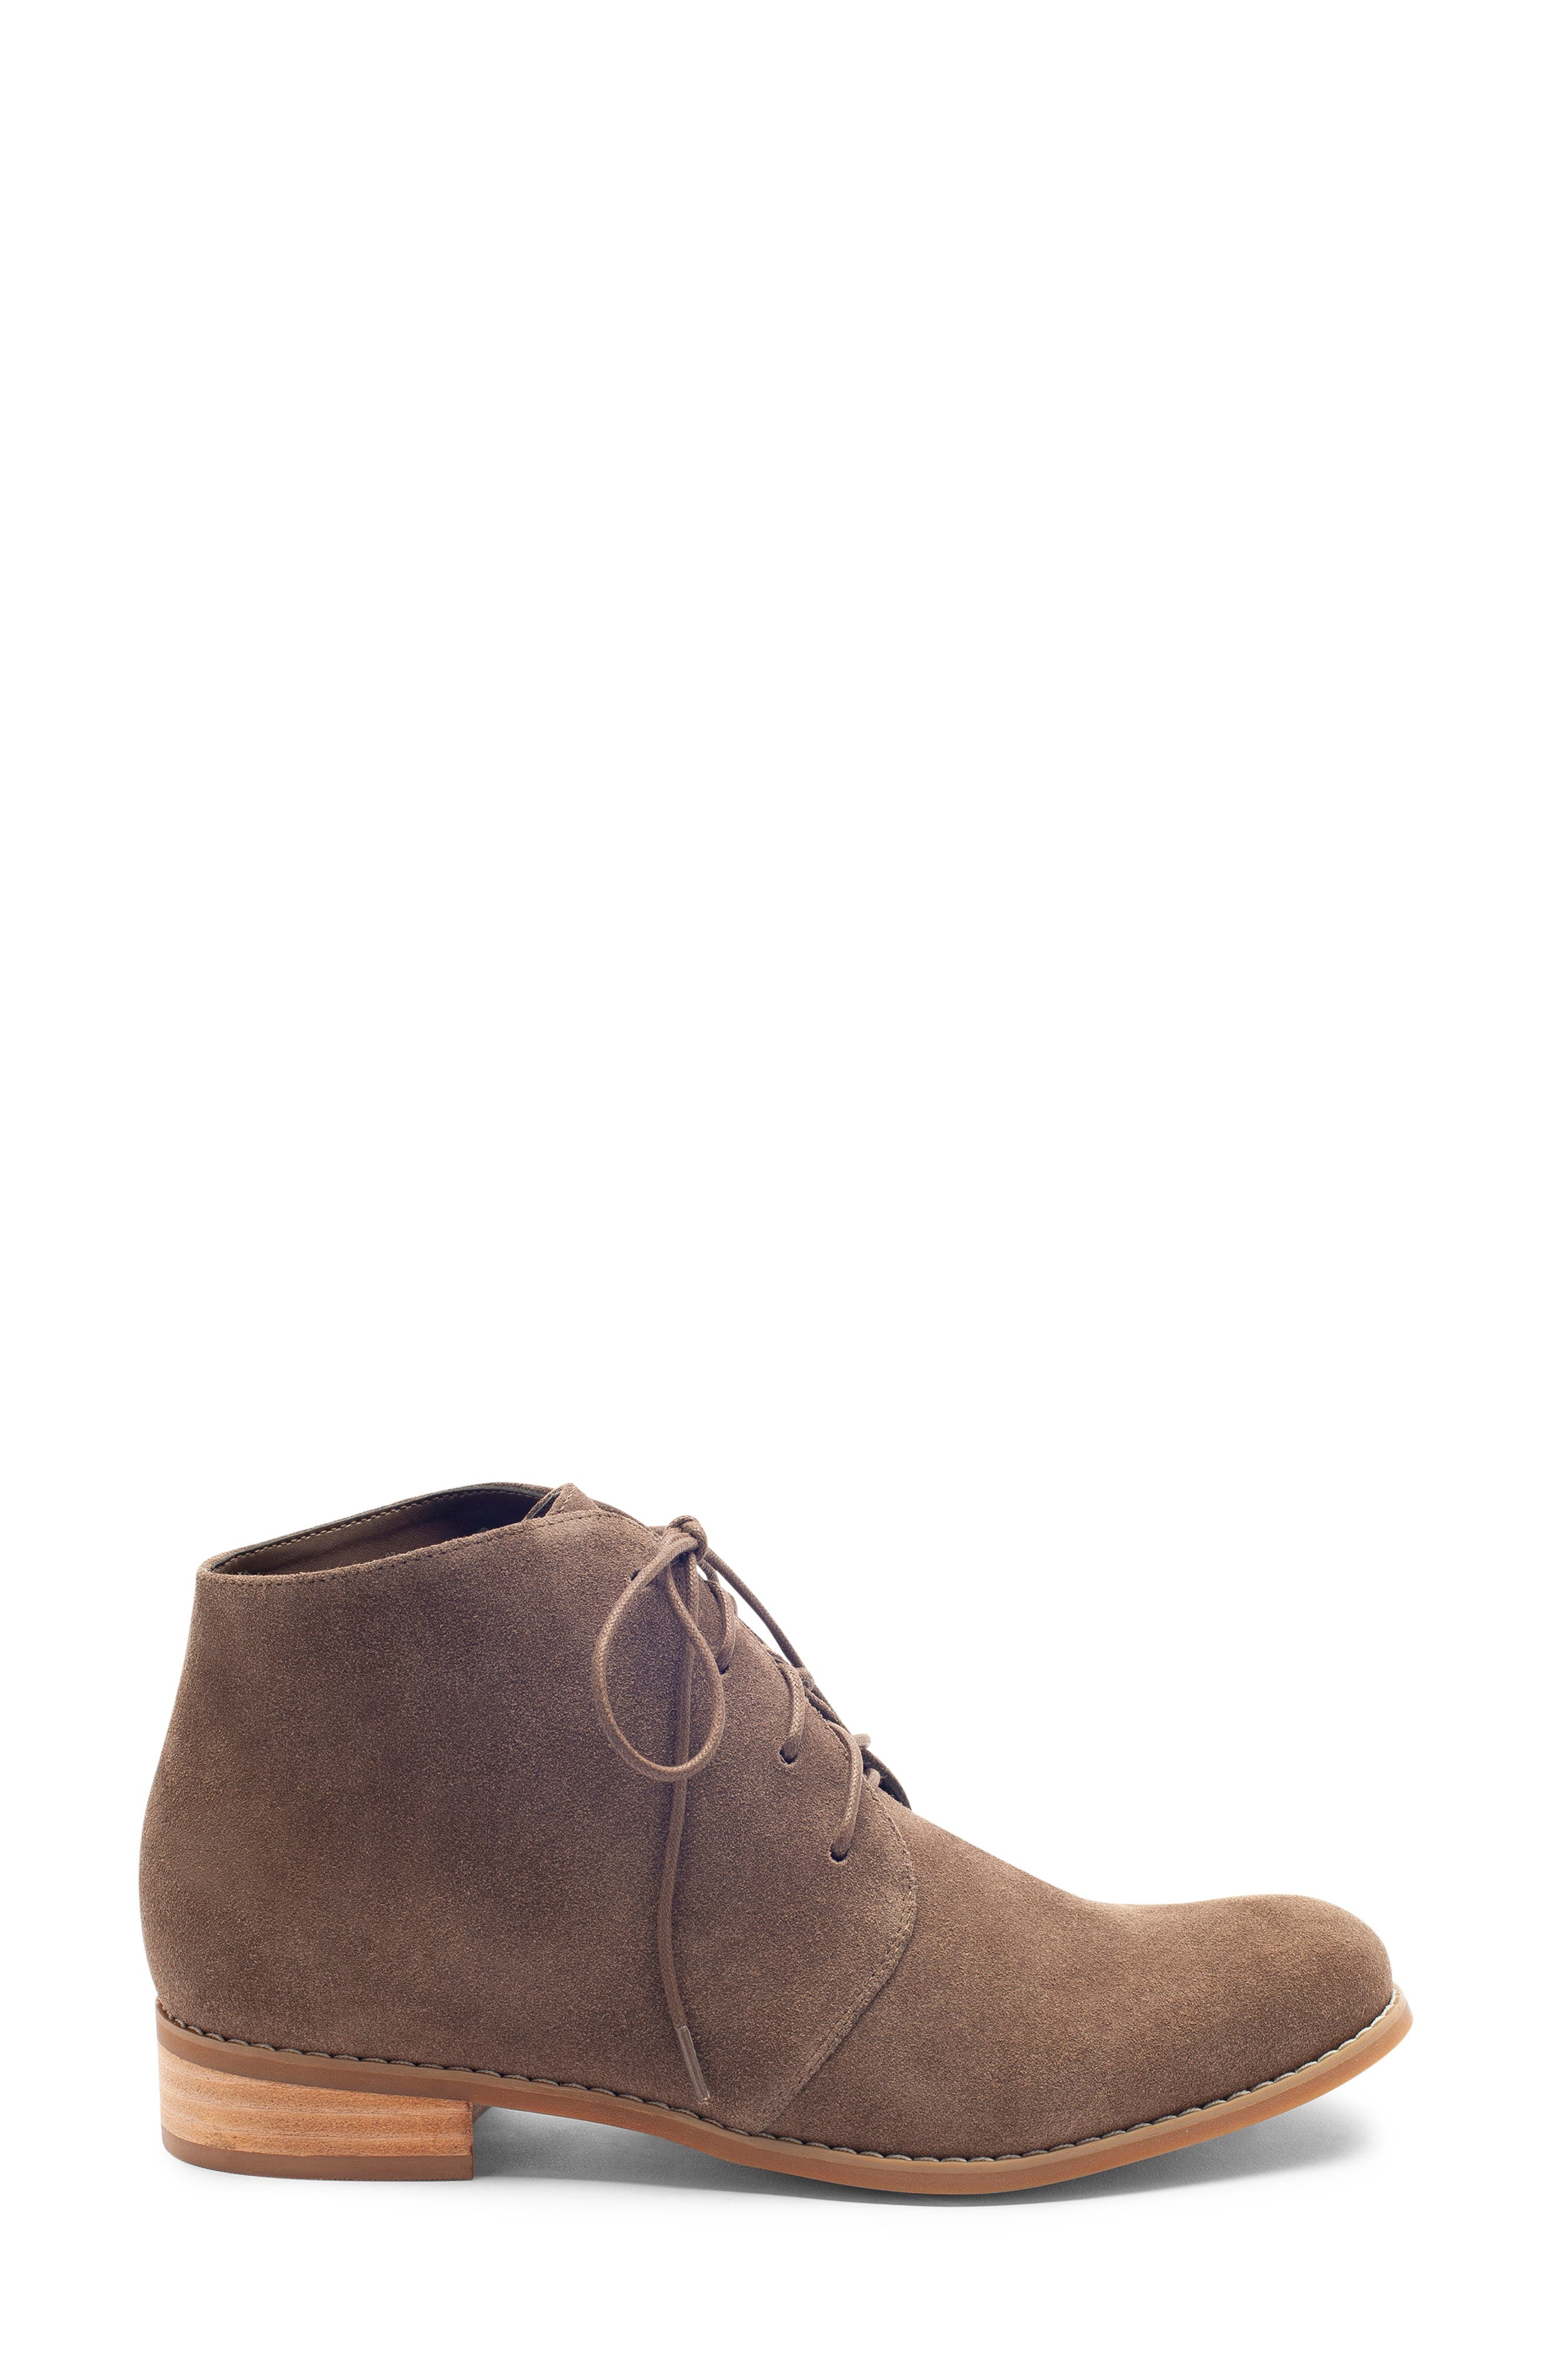 Rayann Waterproof Desert Boot,                             Alternate thumbnail 3, color,                             DARK TAUPE SUEDE